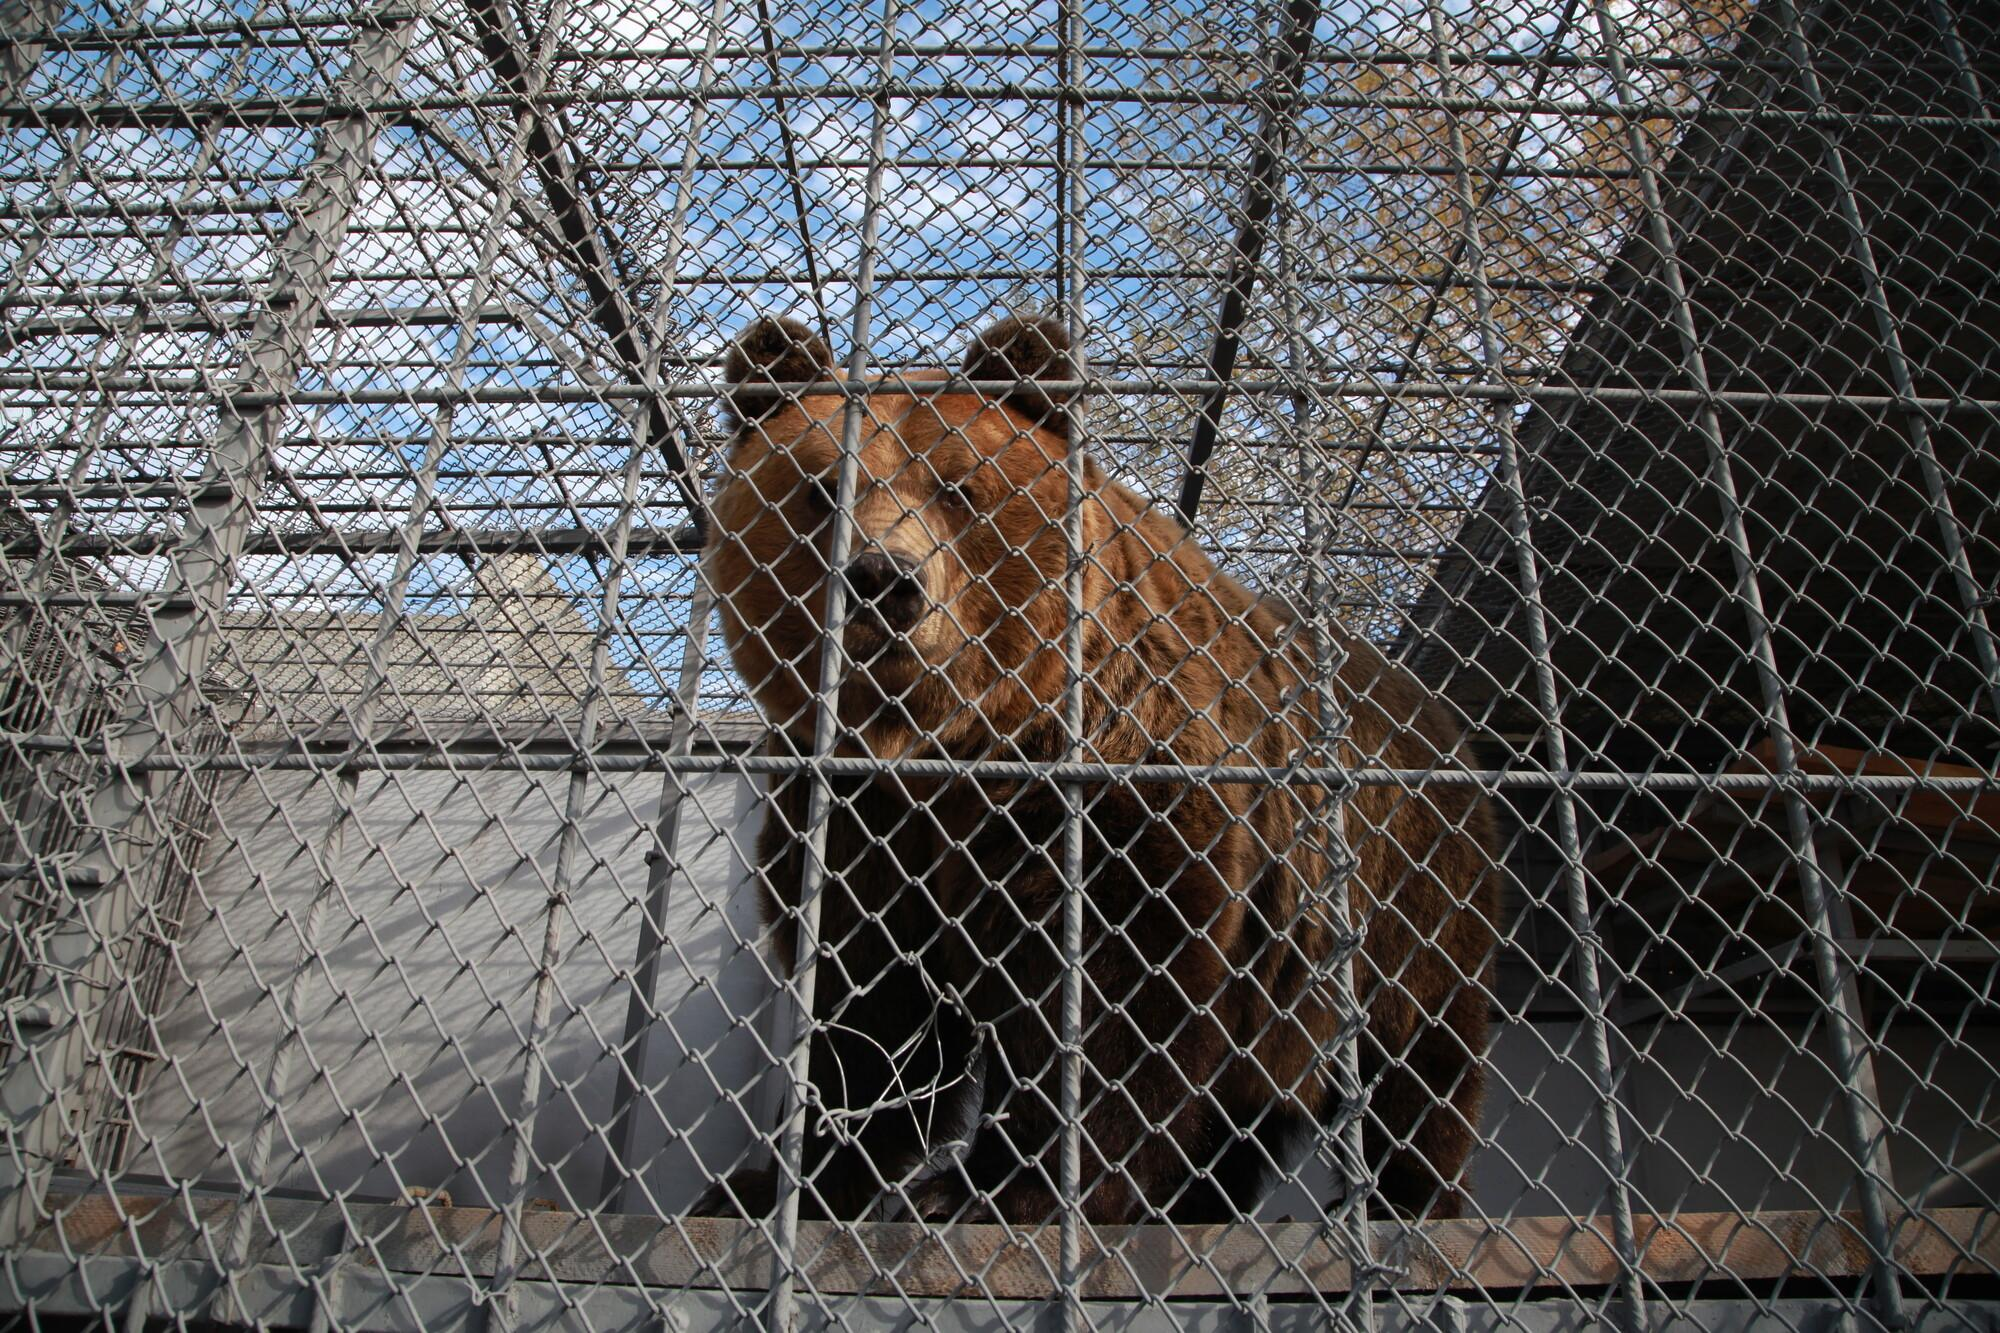 The bears spent a life behind bars